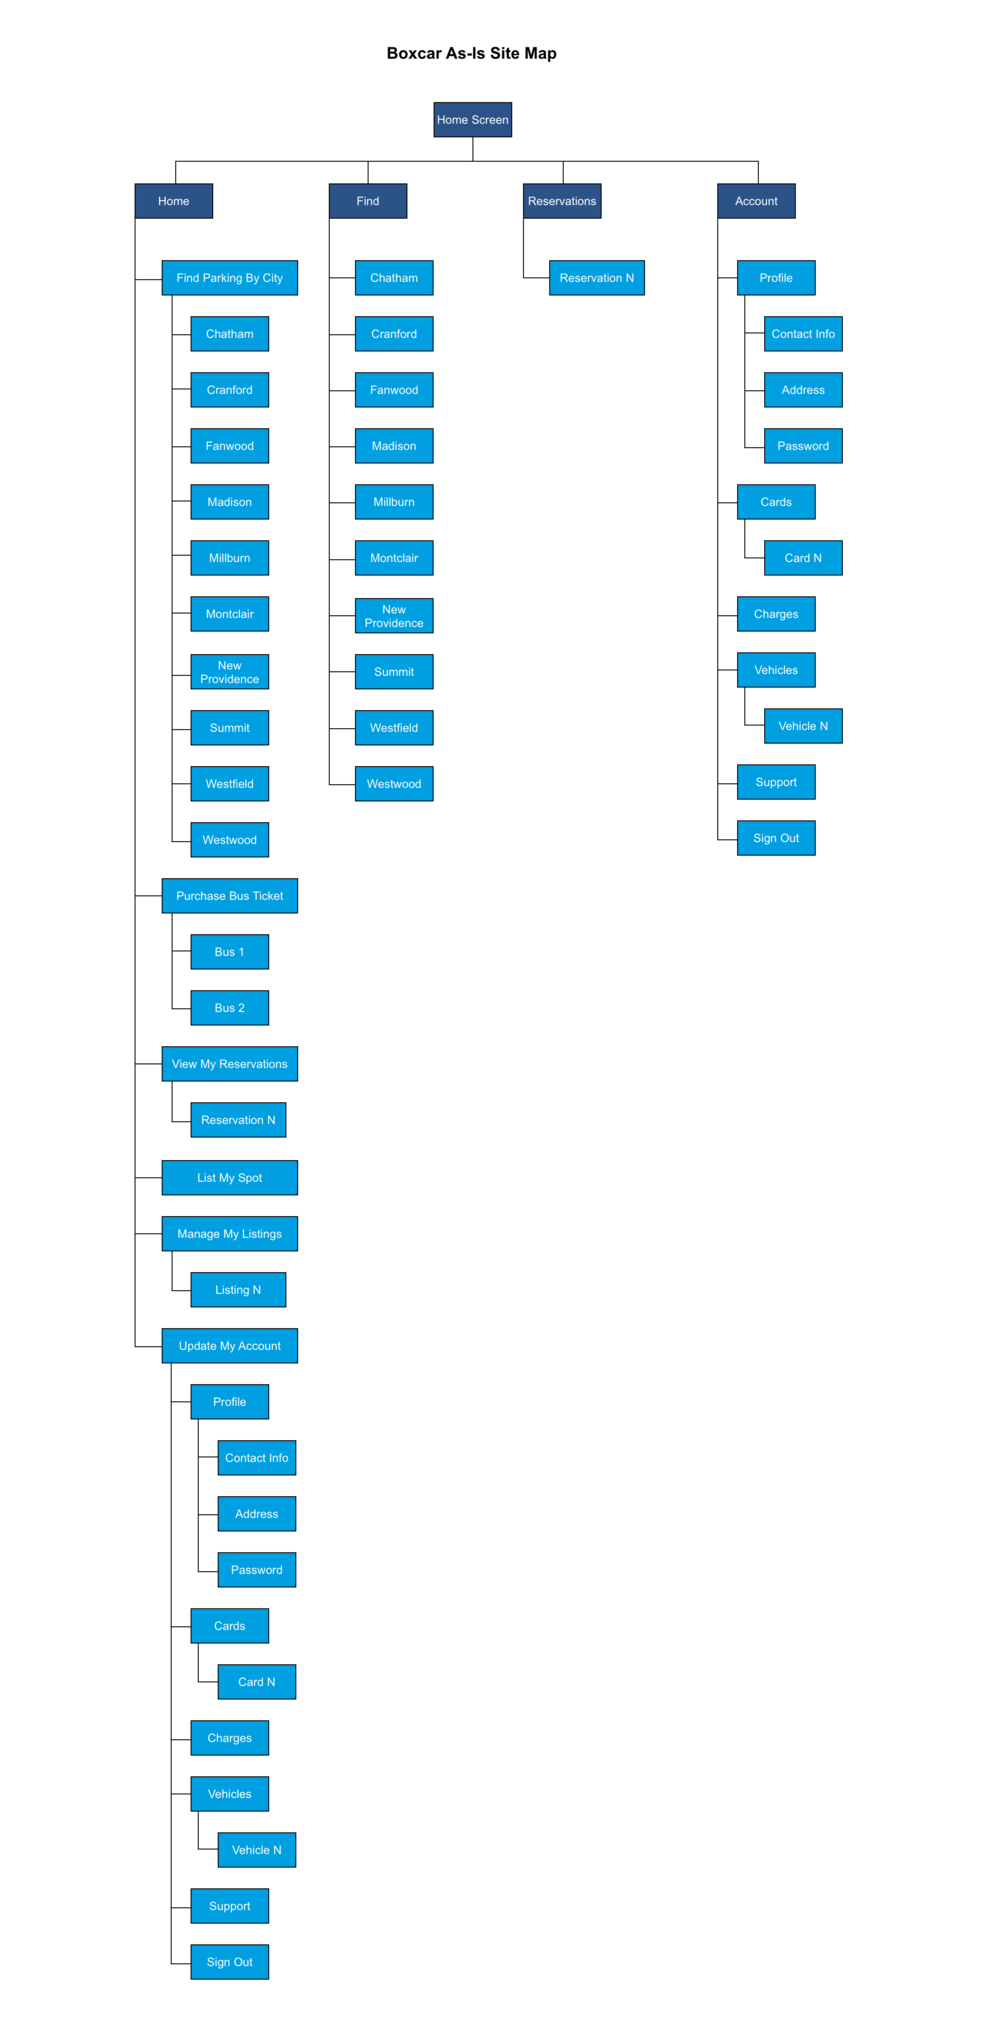 as-is boxcat sitemap.png